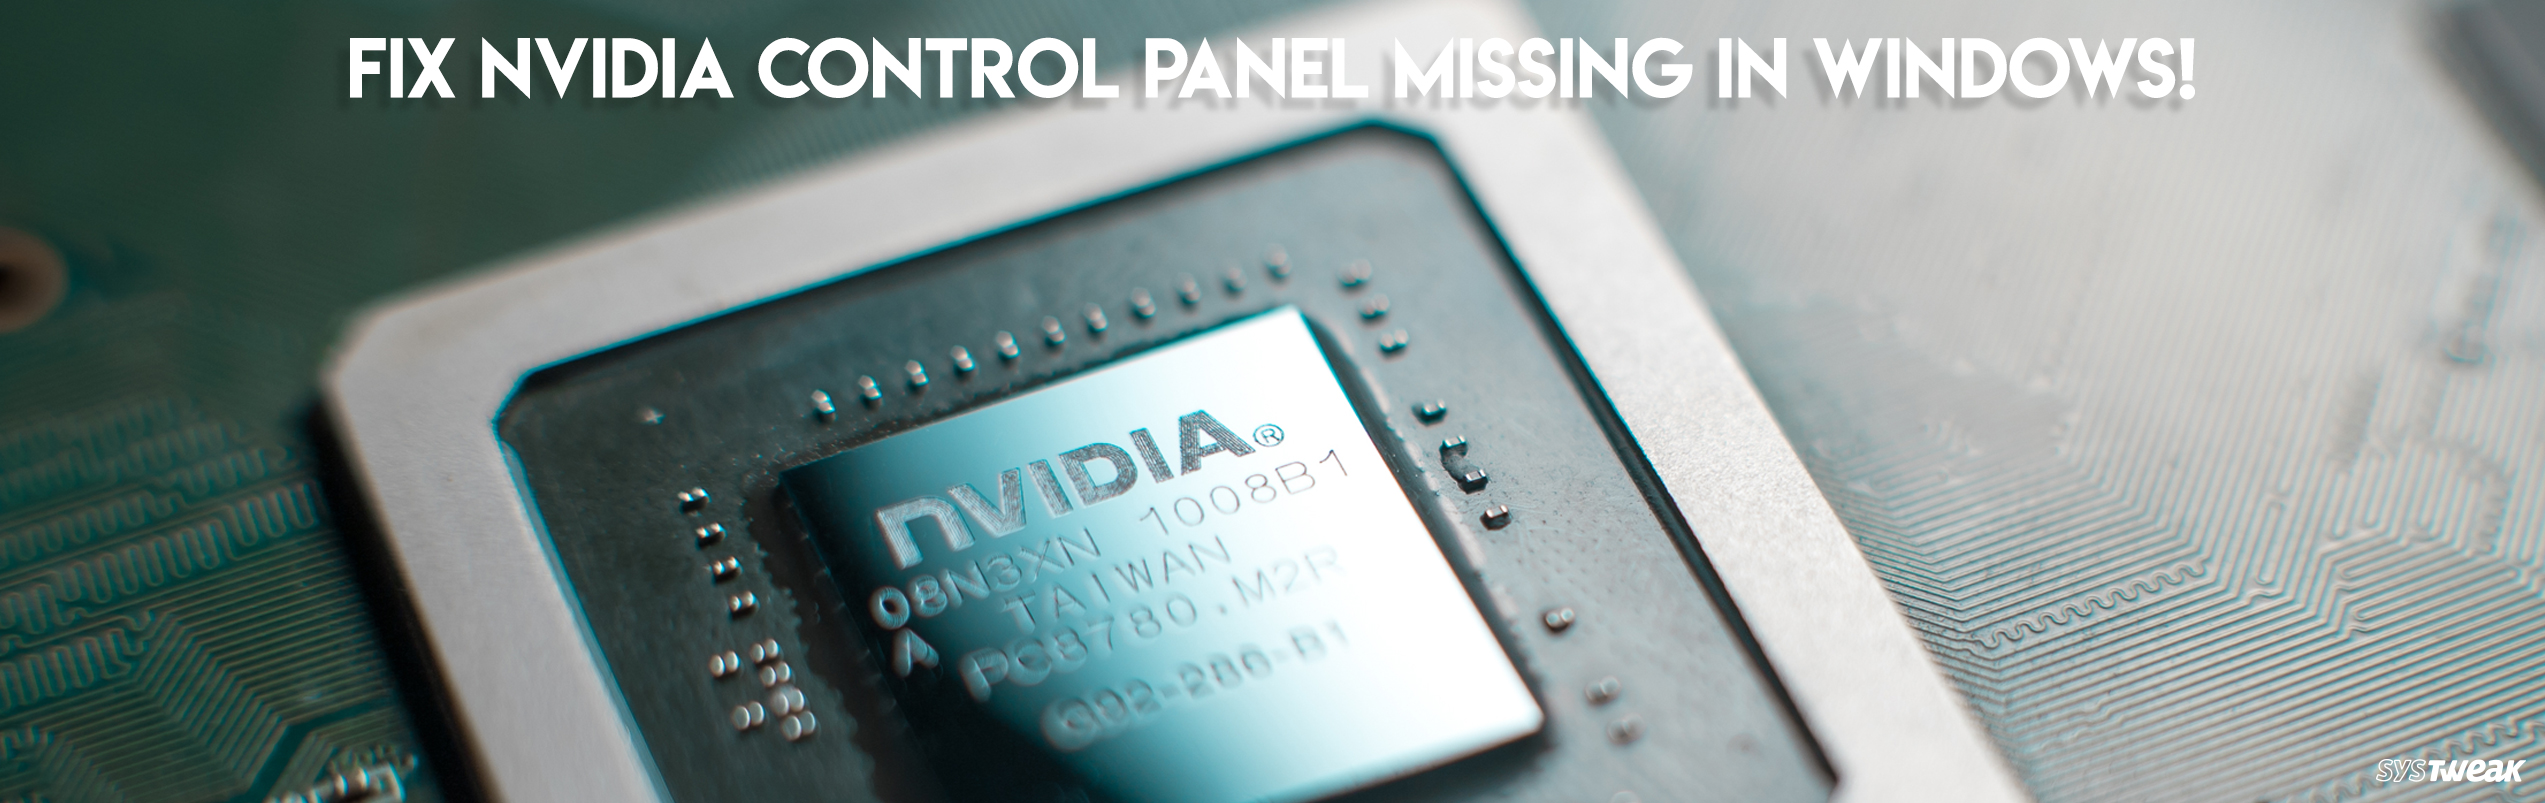 How To Fix Nvidia Control Panel Missing In Windows 10, 8, 7?